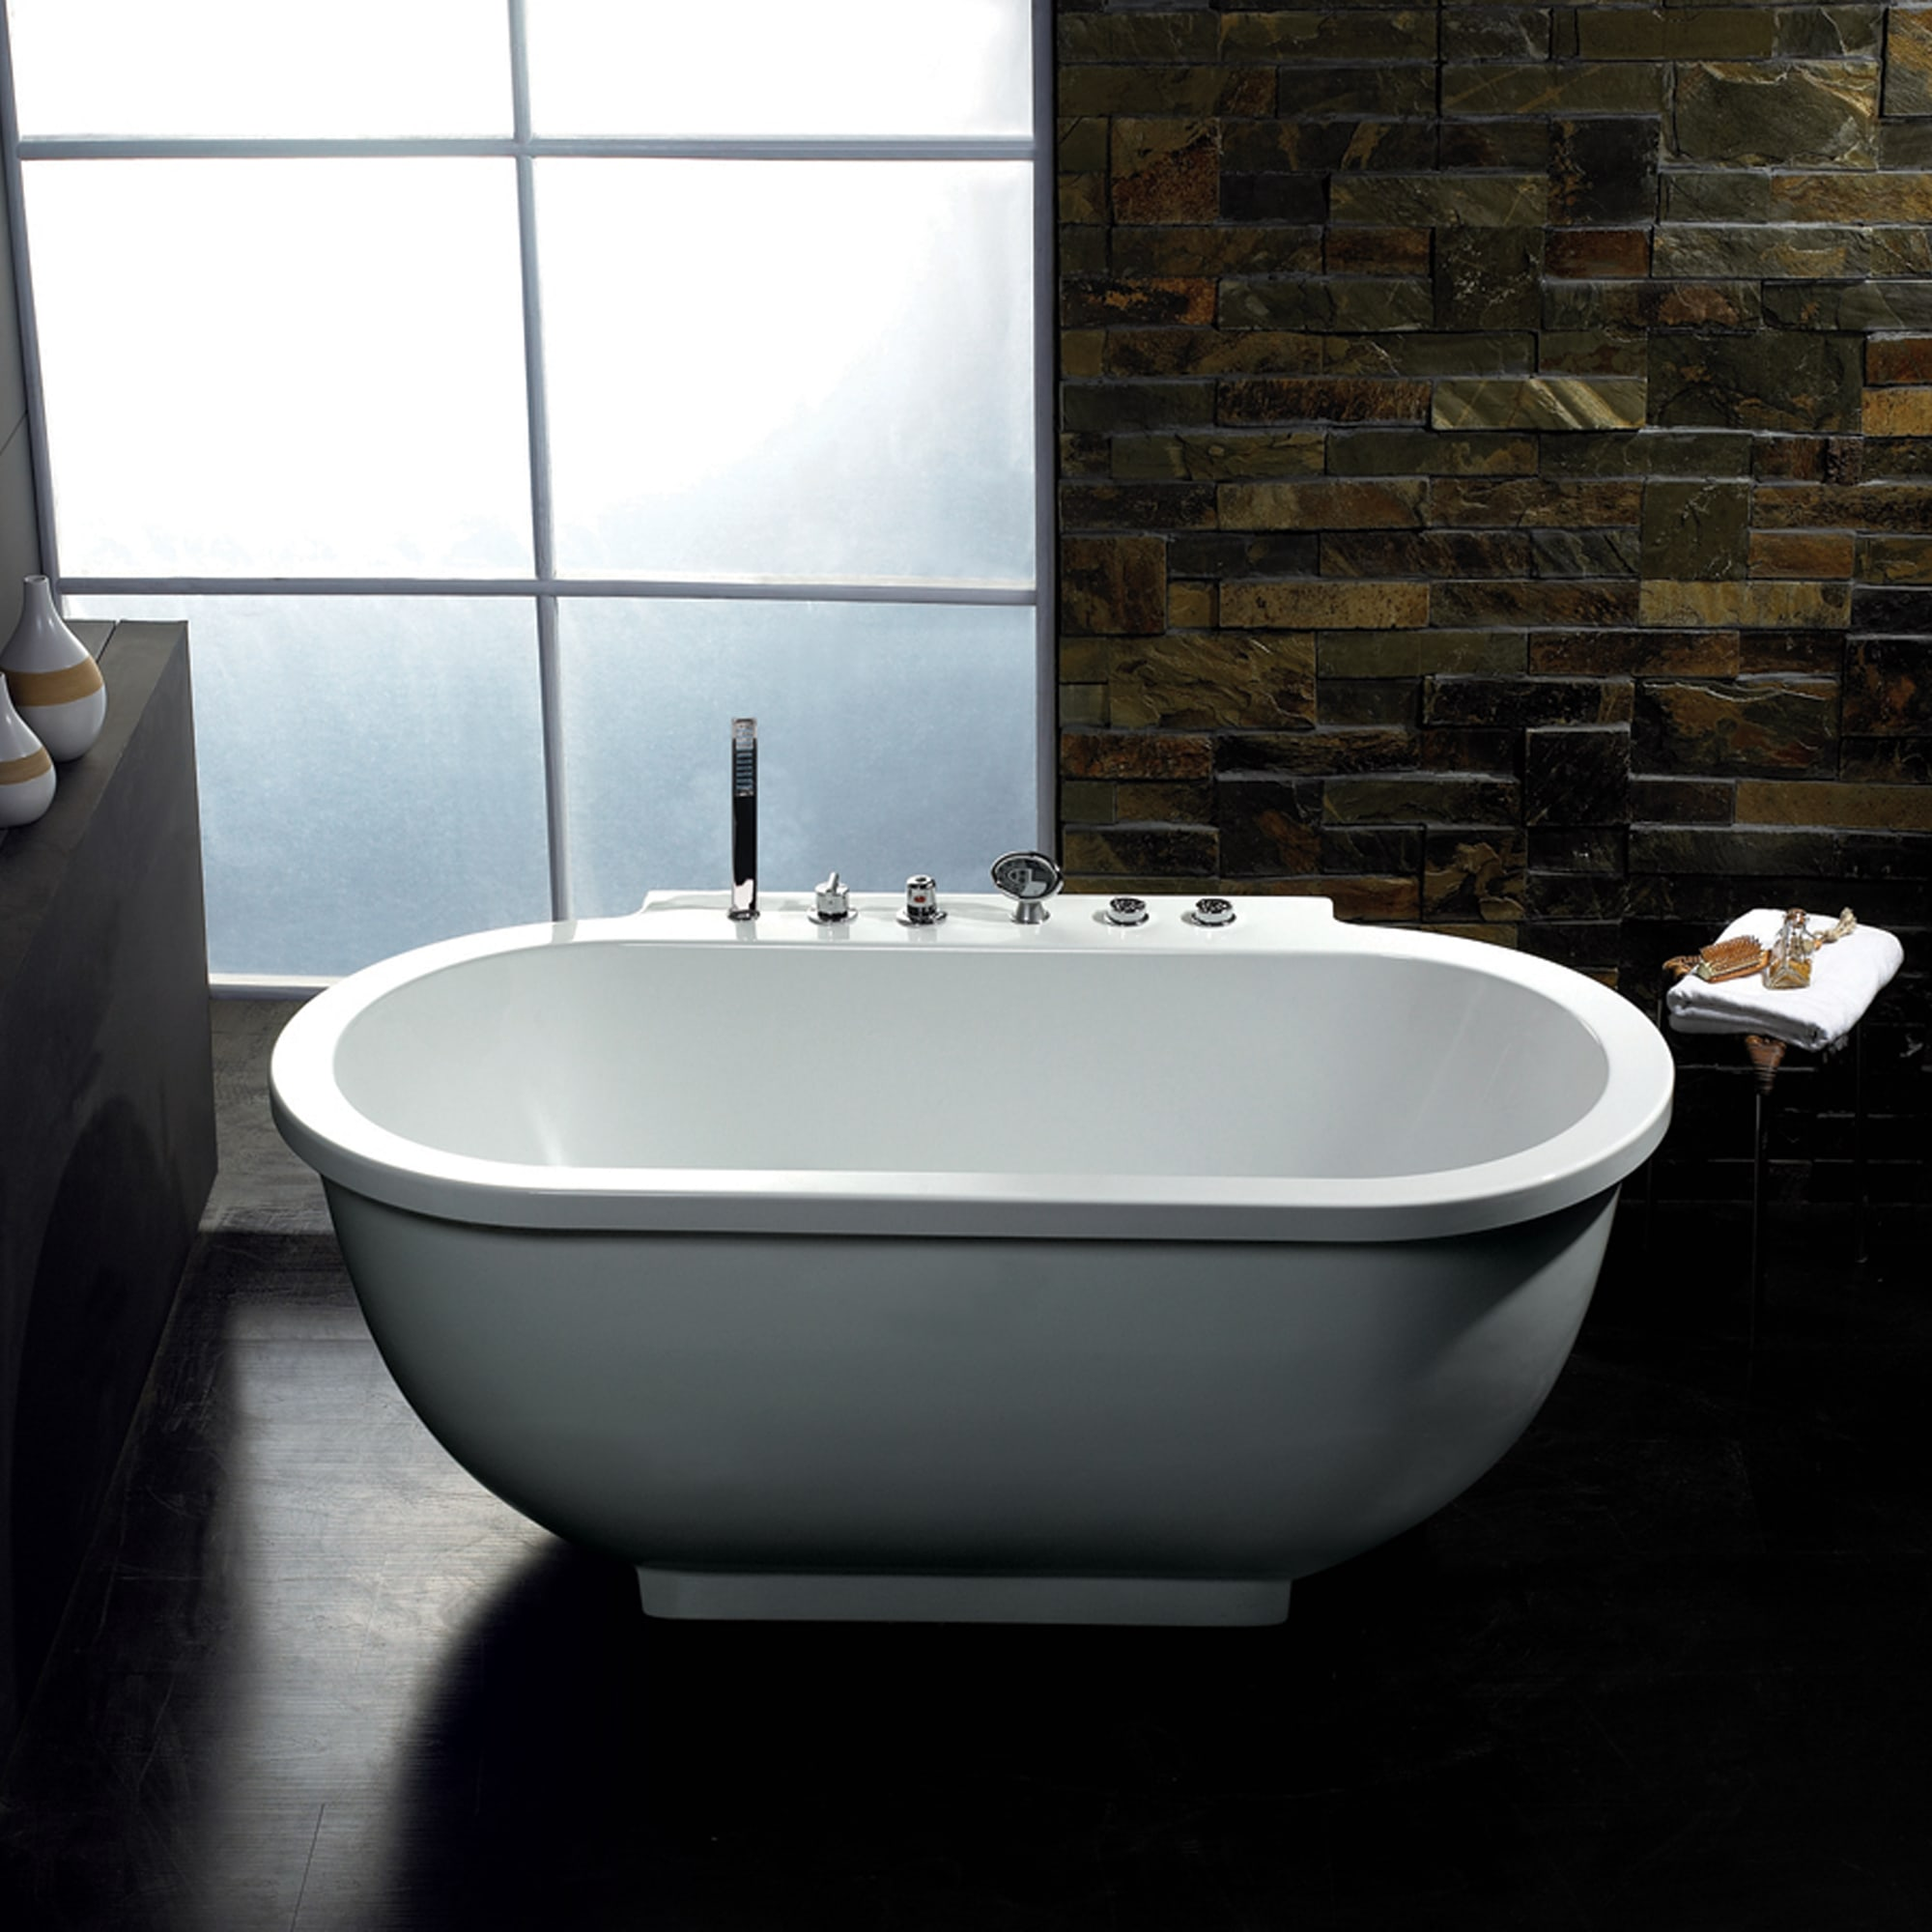 privacy for bathroom window over tub decorative window.htm ariel am128jdclz oval free standing whirlpool bath tub with all  oval free standing whirlpool bath tub